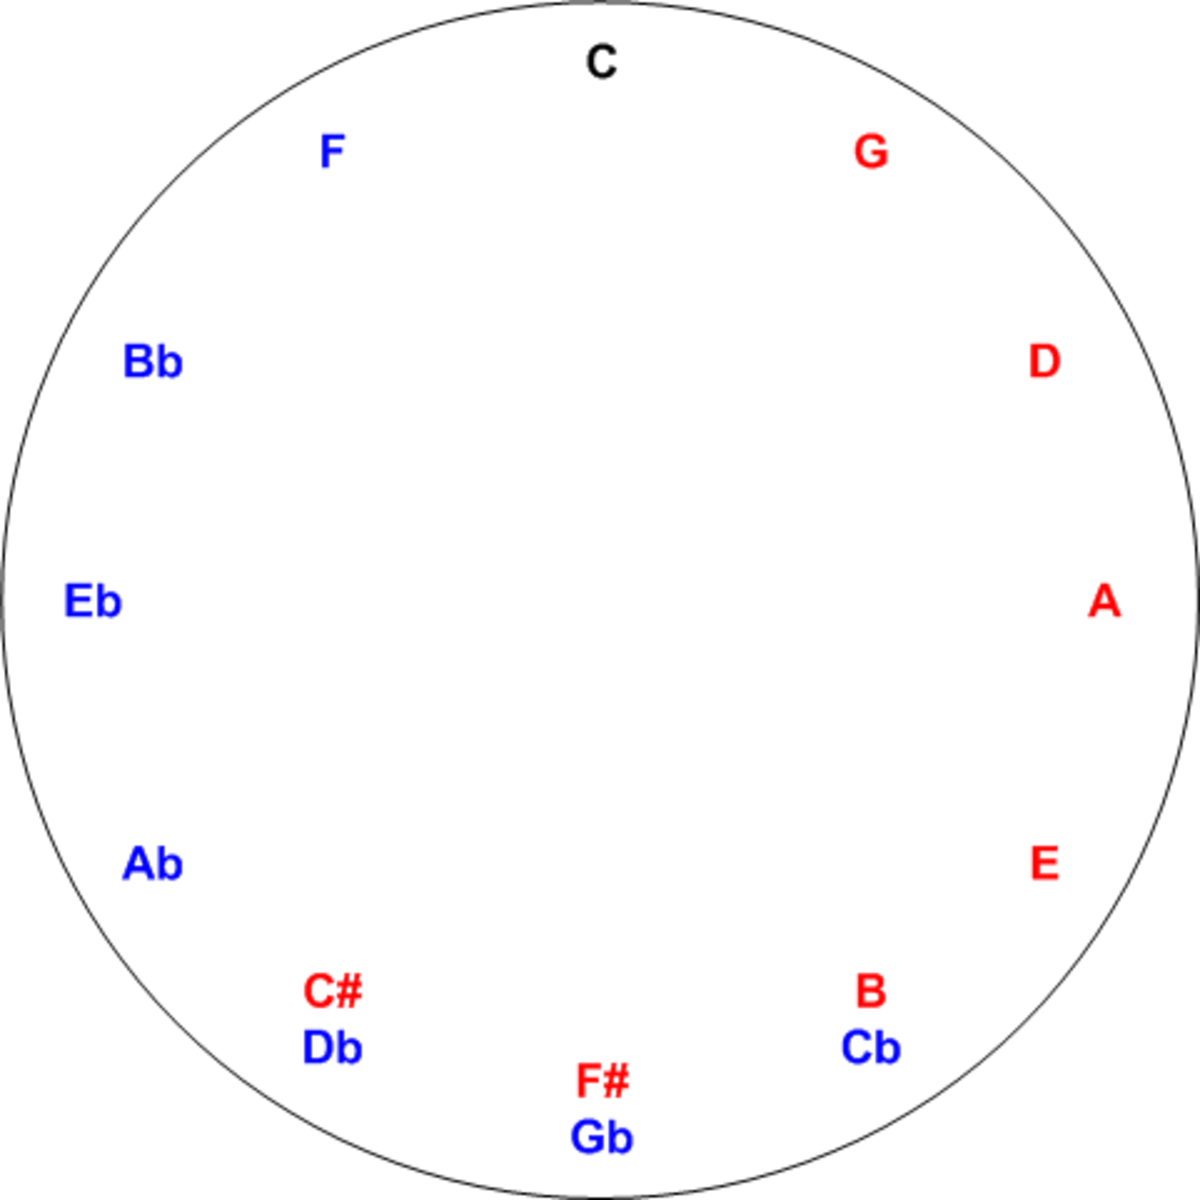 The Cycle of Fifths - essential theory for guitars and keyboards